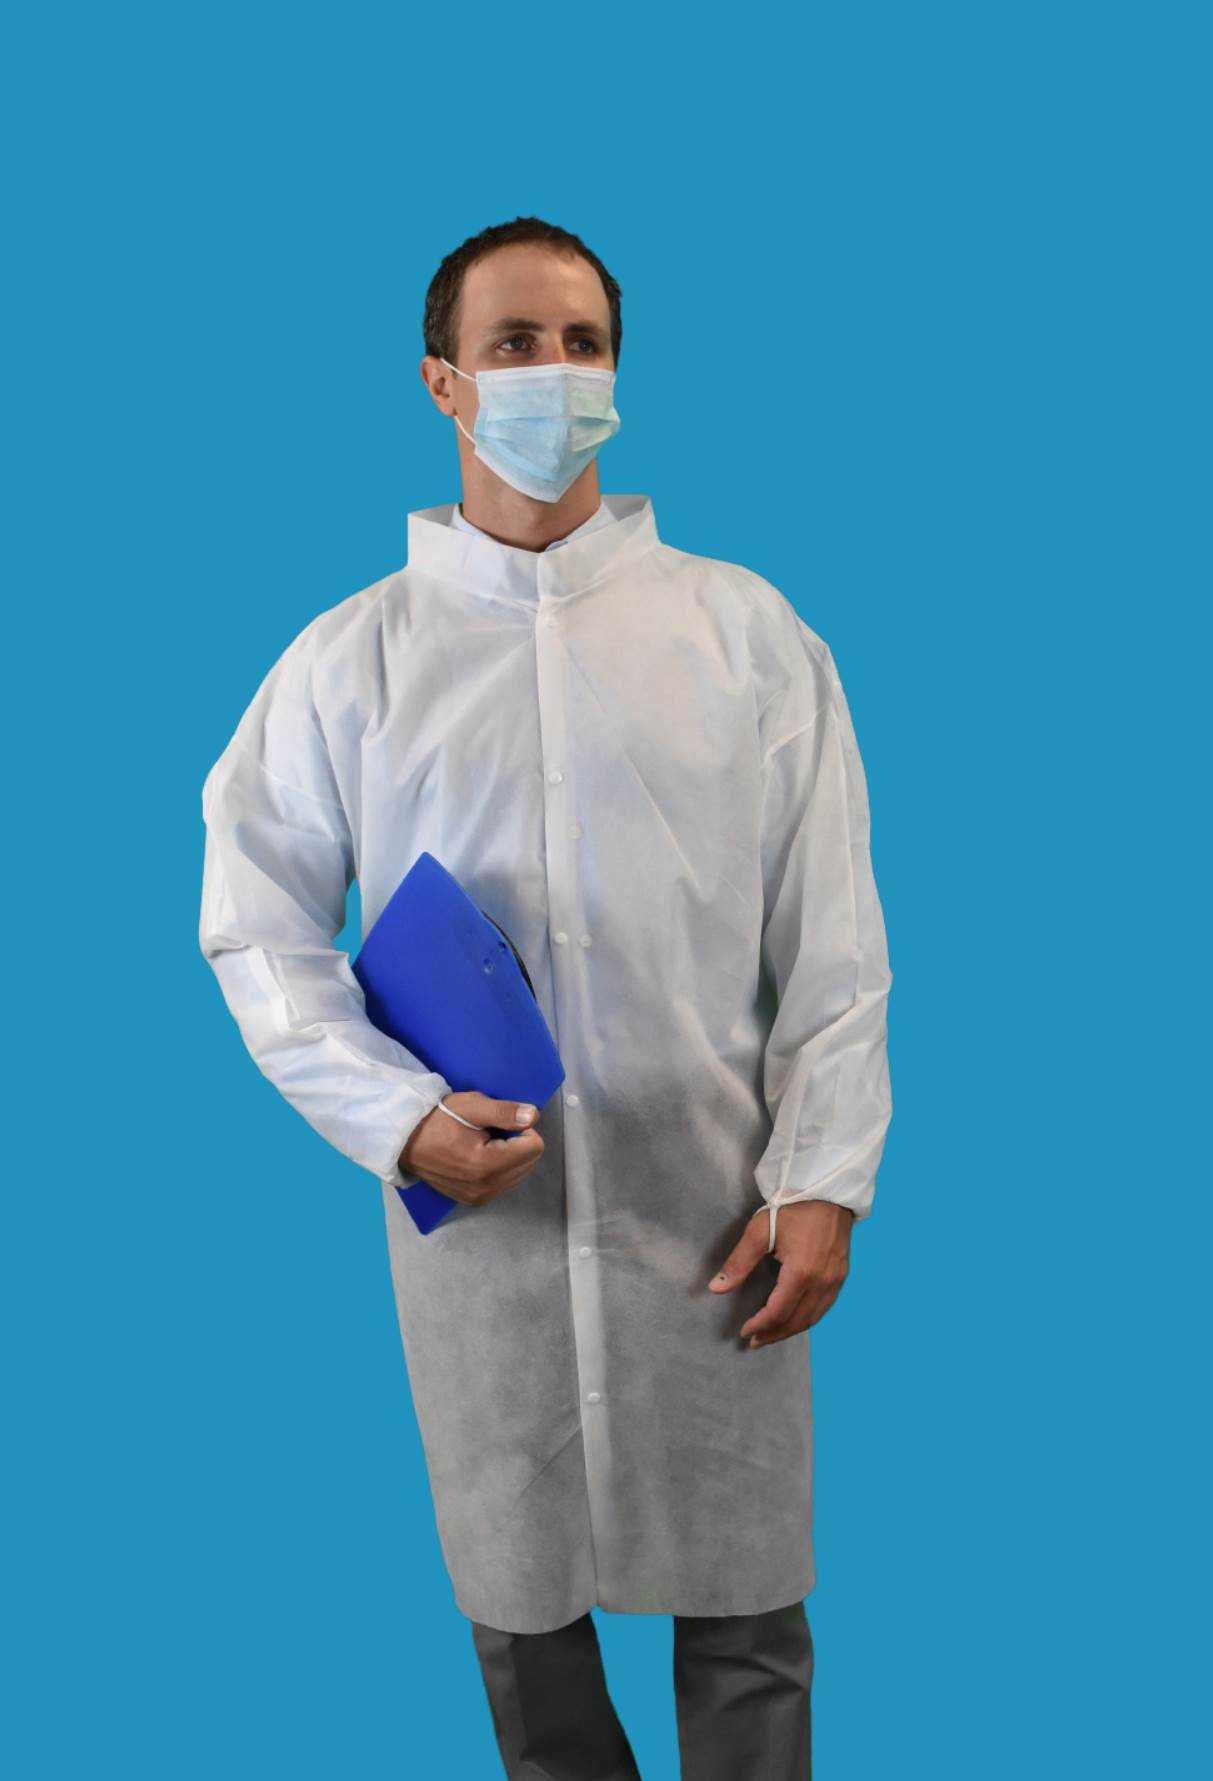 #CEF0-WE-NW-HD Keystone Heavy Duty Polypropylene No Pocket Disposable Cleanroom Frocks